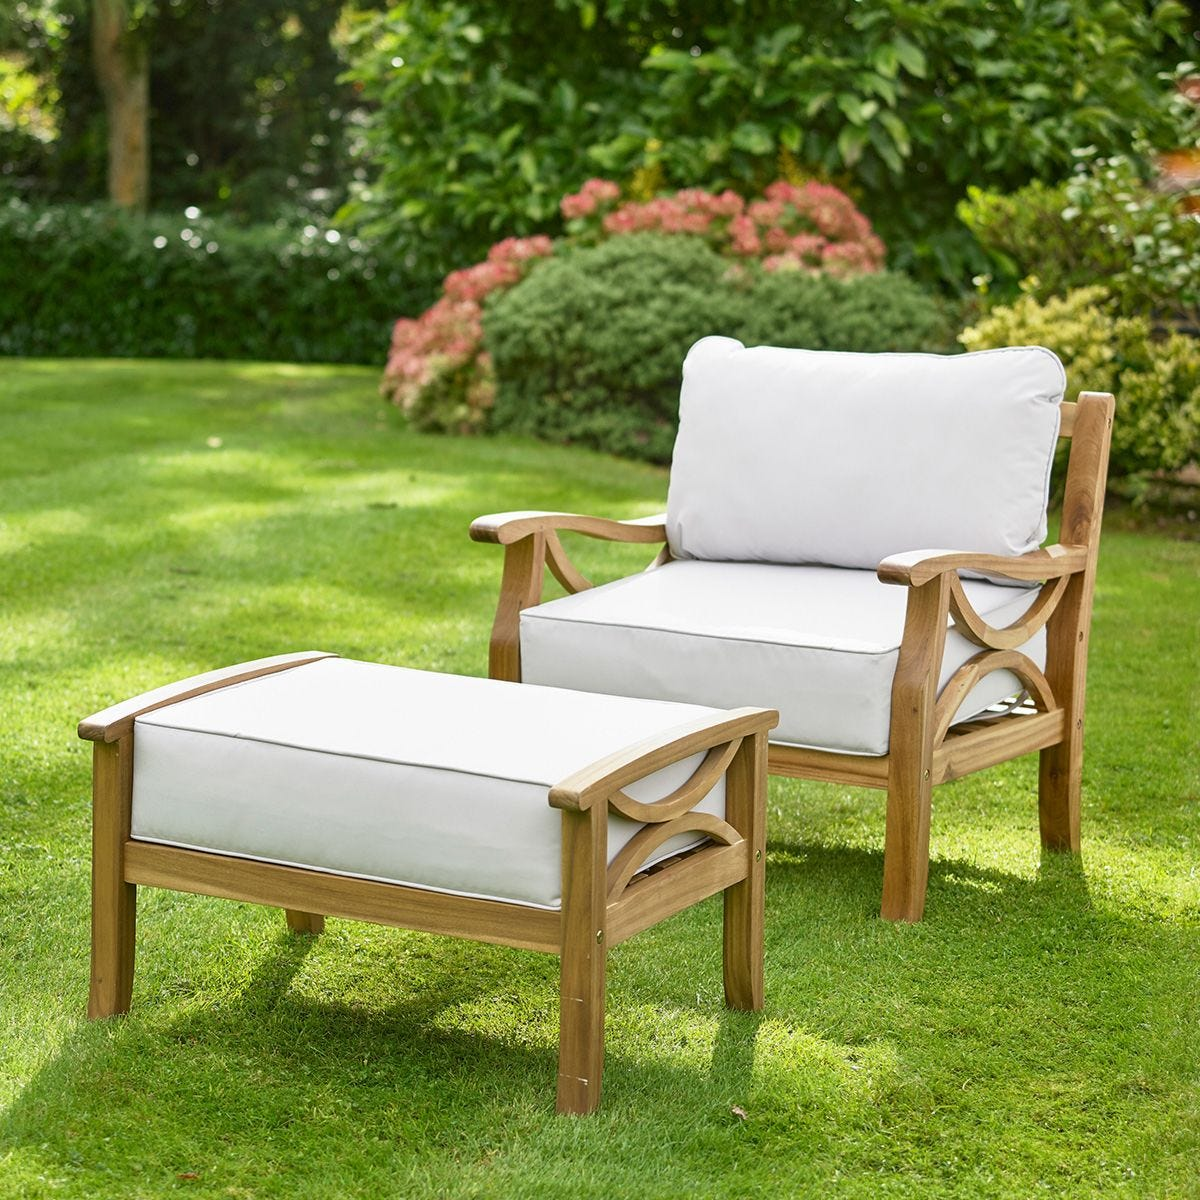 Greenhurst Hardwood Sorrento Armchair with Footrest and Cushions - Natural